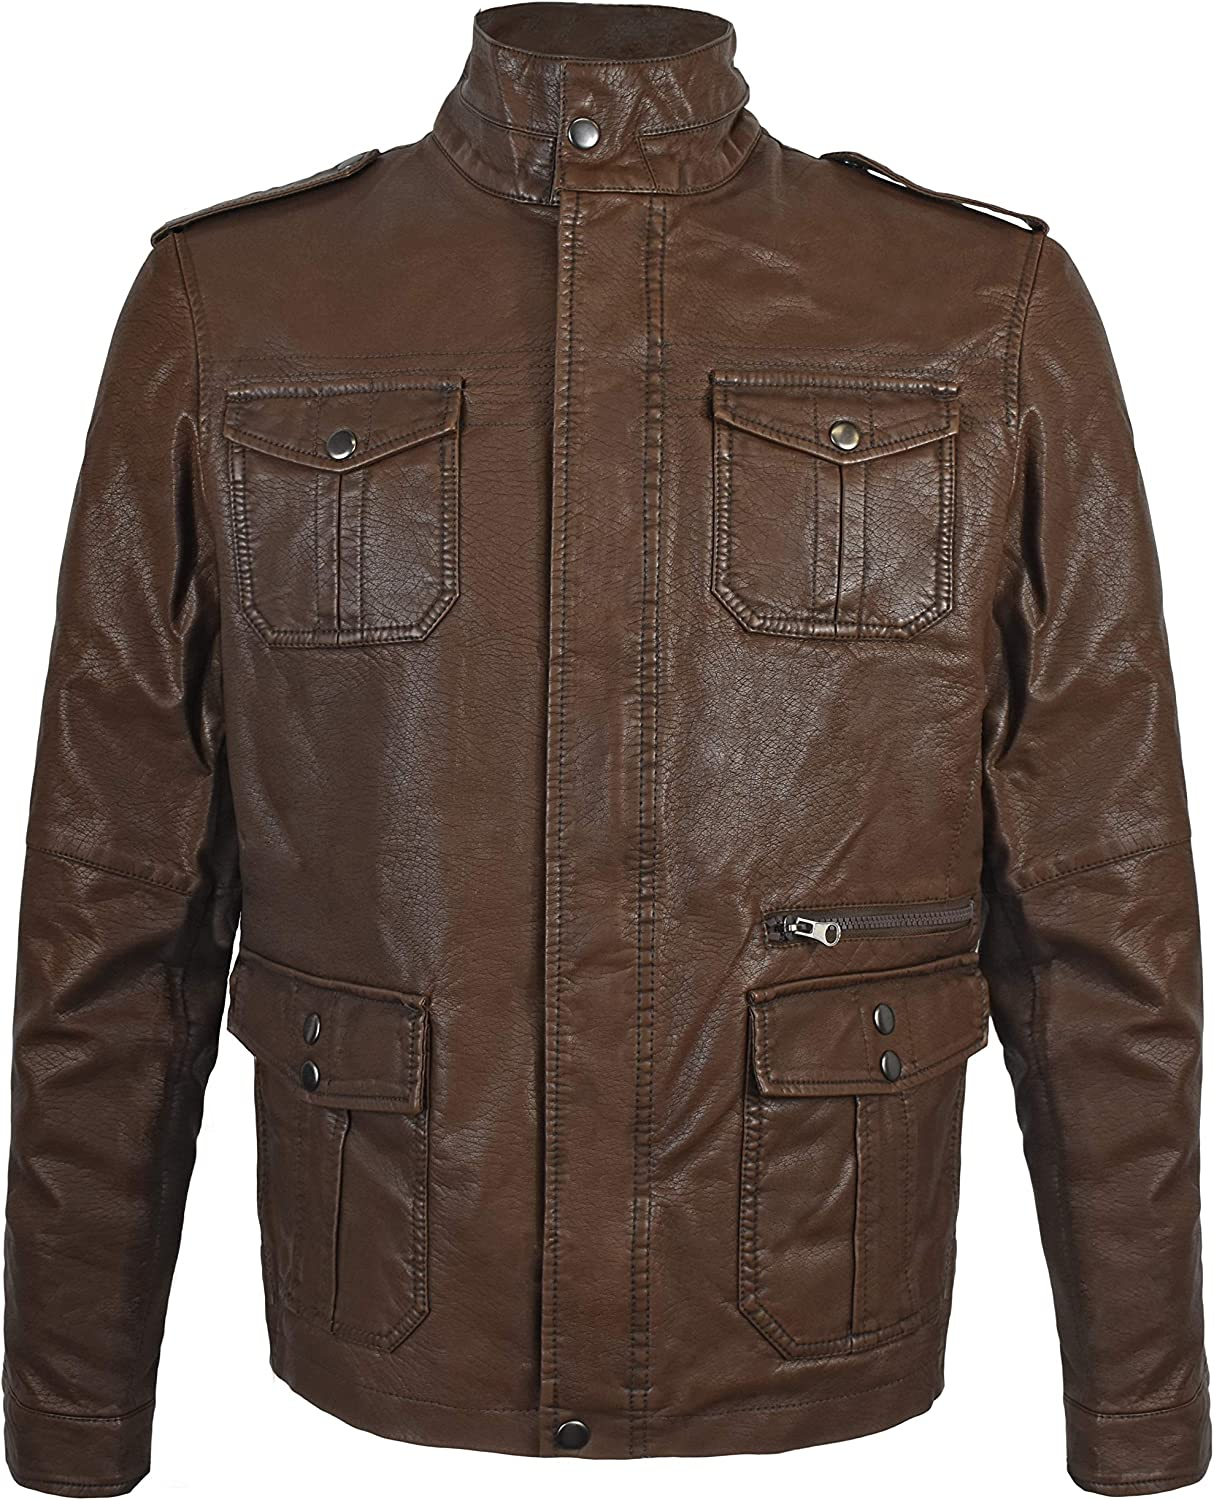 Victory Outfitters Men's Distressed Brown Sherpa Lined Faux Leather Jacket